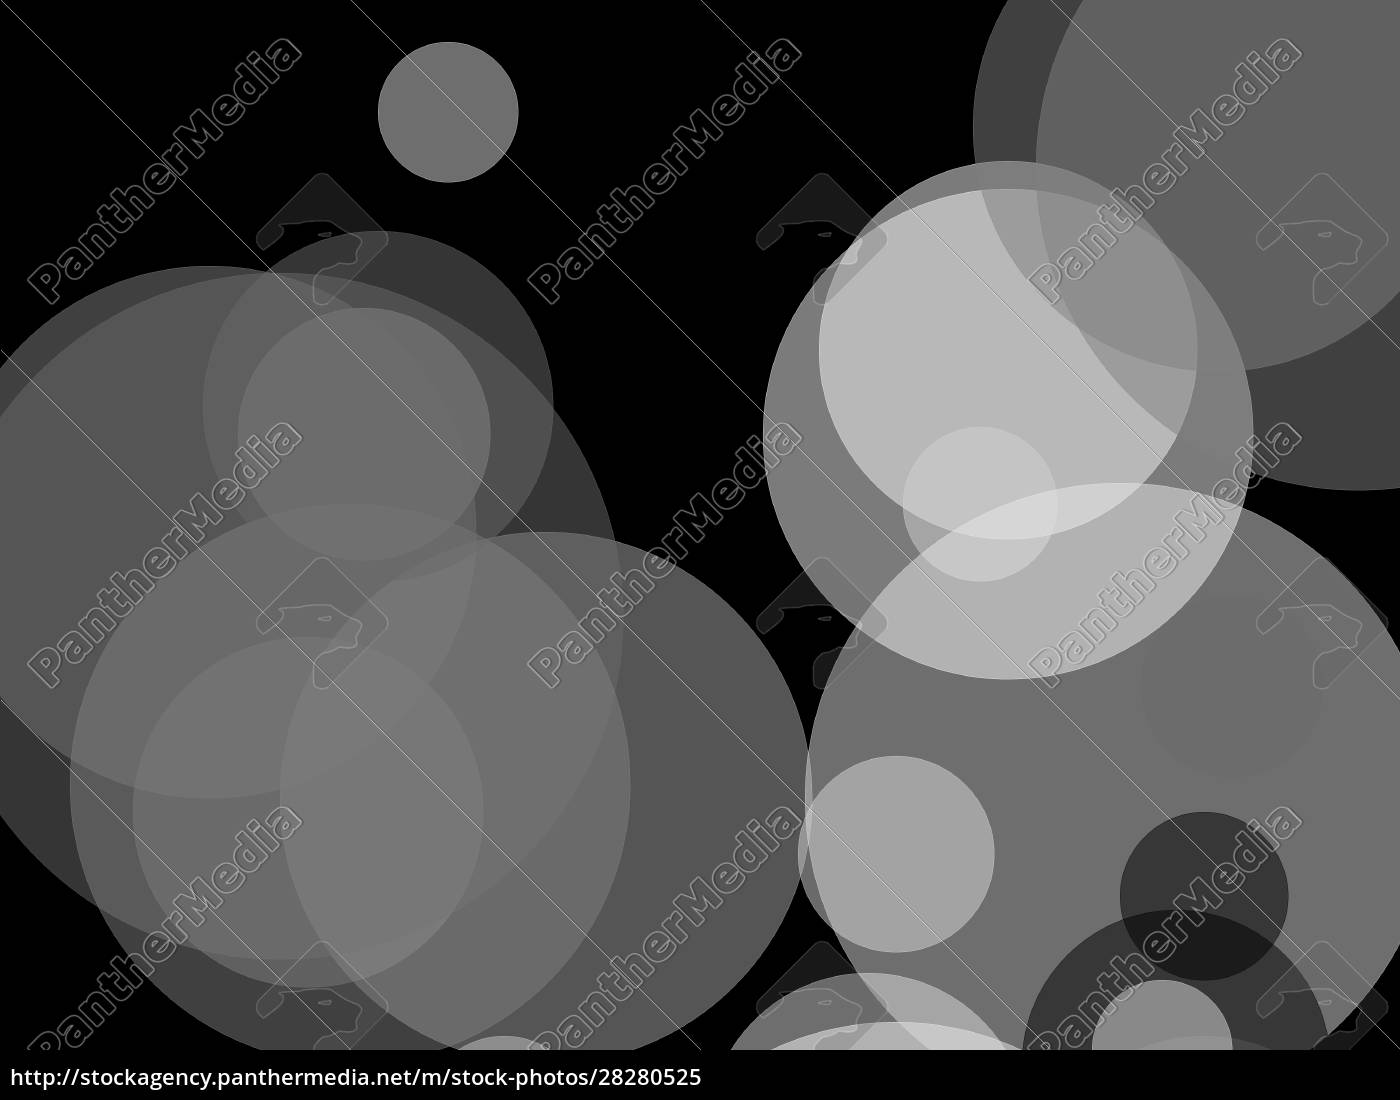 abstract, grey, circles, illustration, background - 28280525